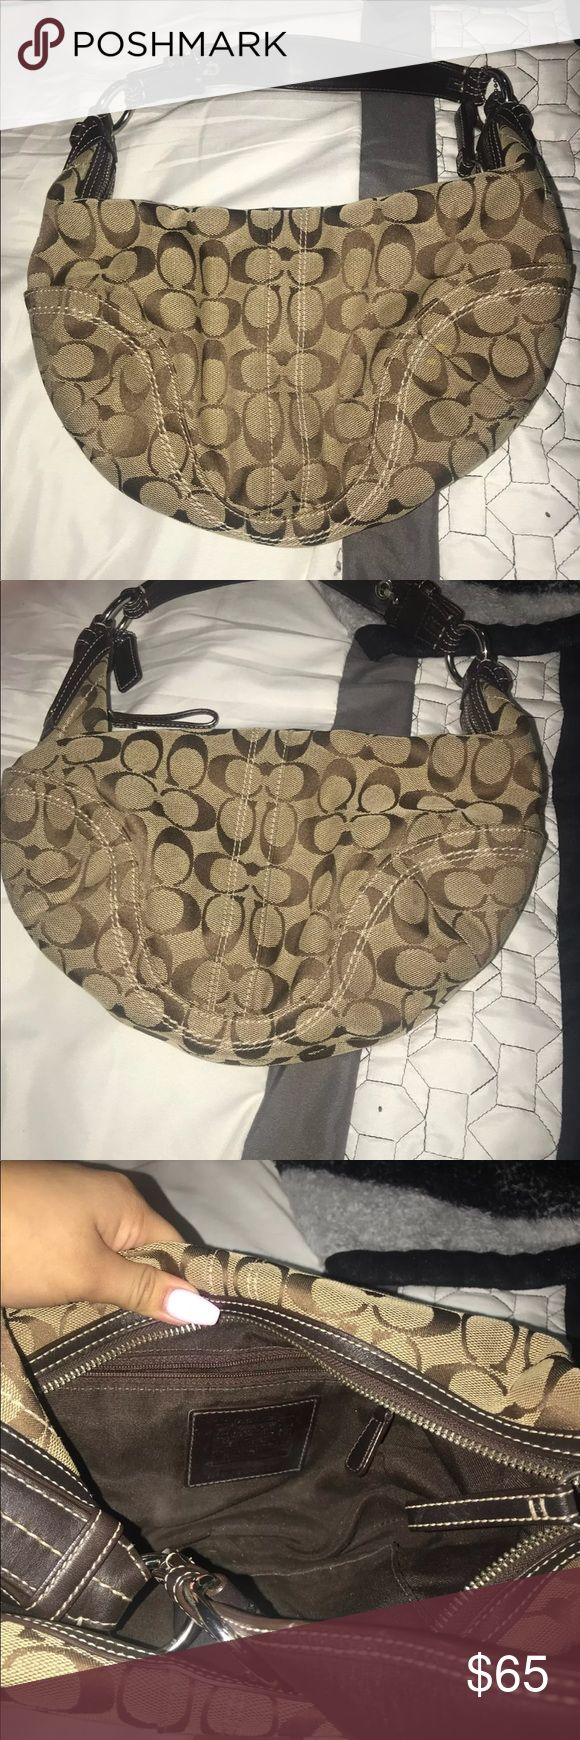 Coach Purse In great condition, no tears. The only flaws are some minor dirt marks on the fabric. However, I'm sure it is removable with proper cleaning. Coach Bags Shoulder Bags